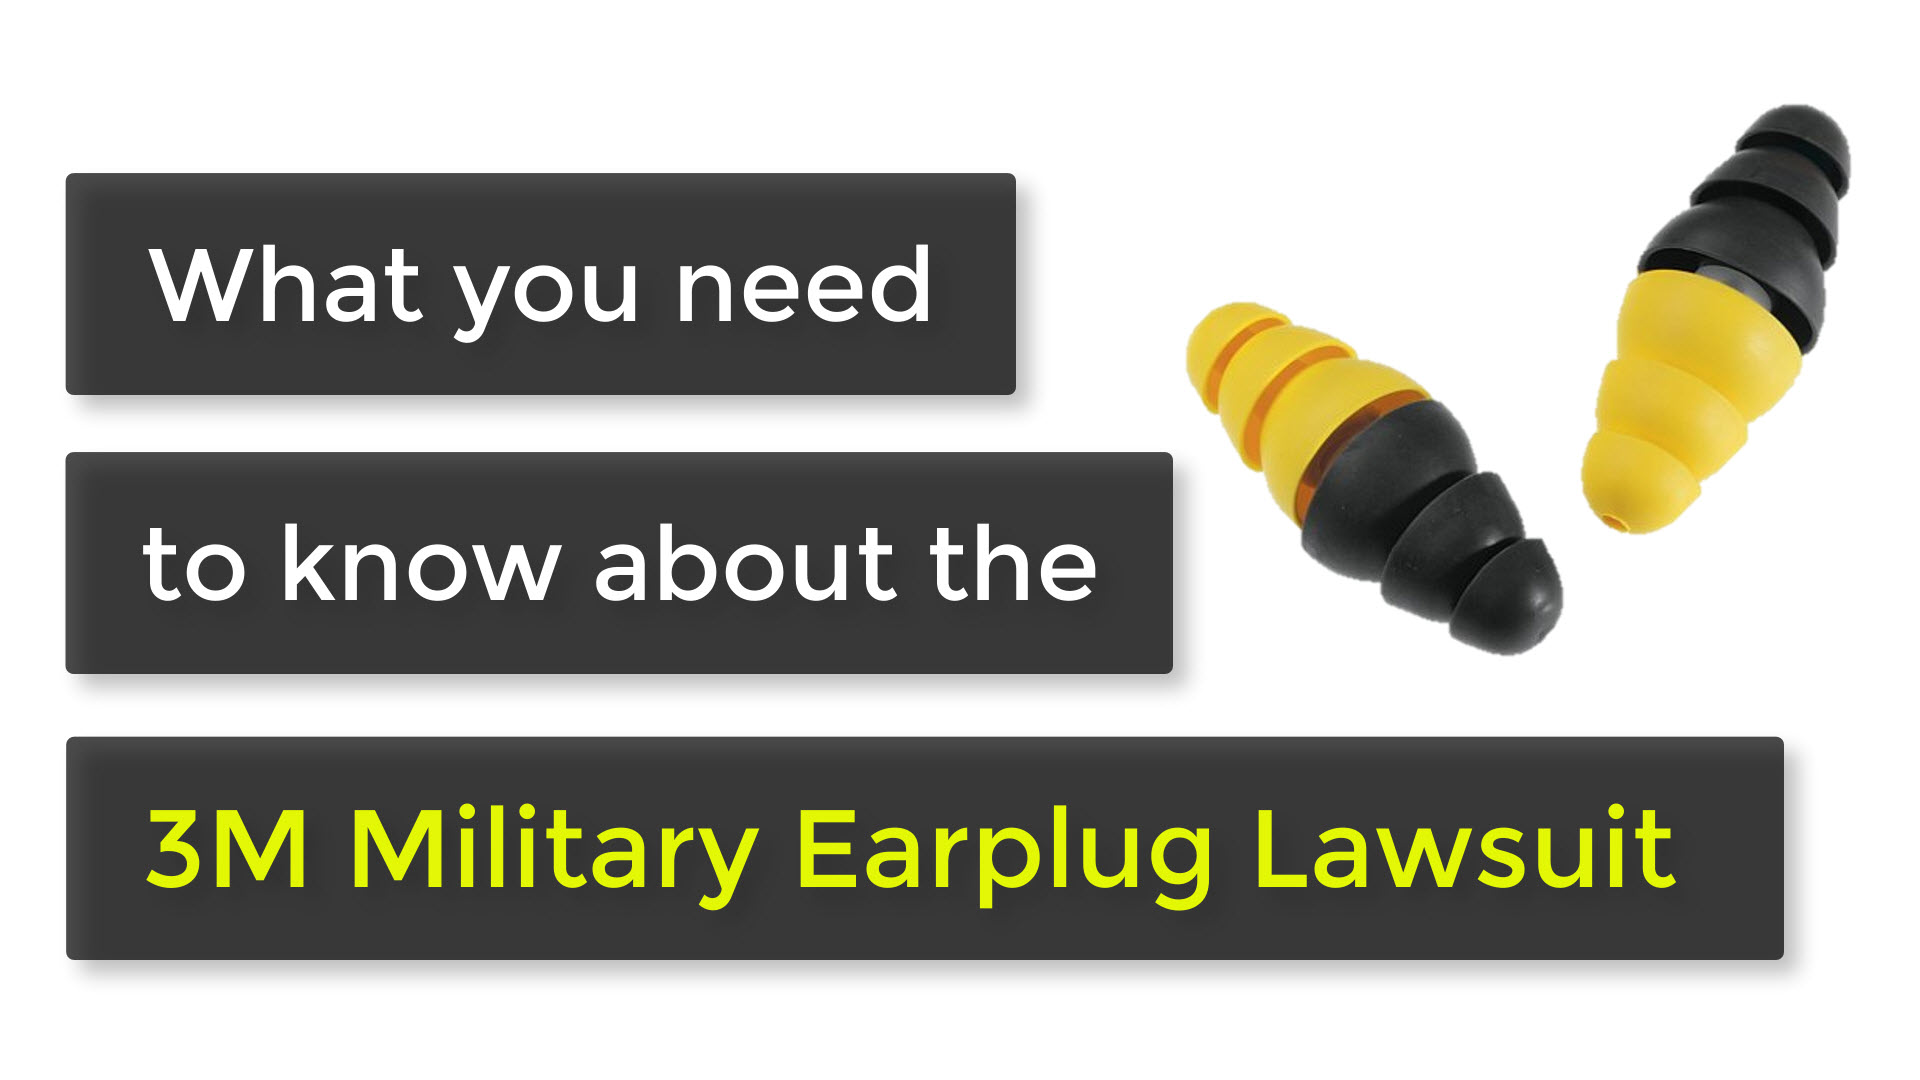 3m military earplug lawsuit